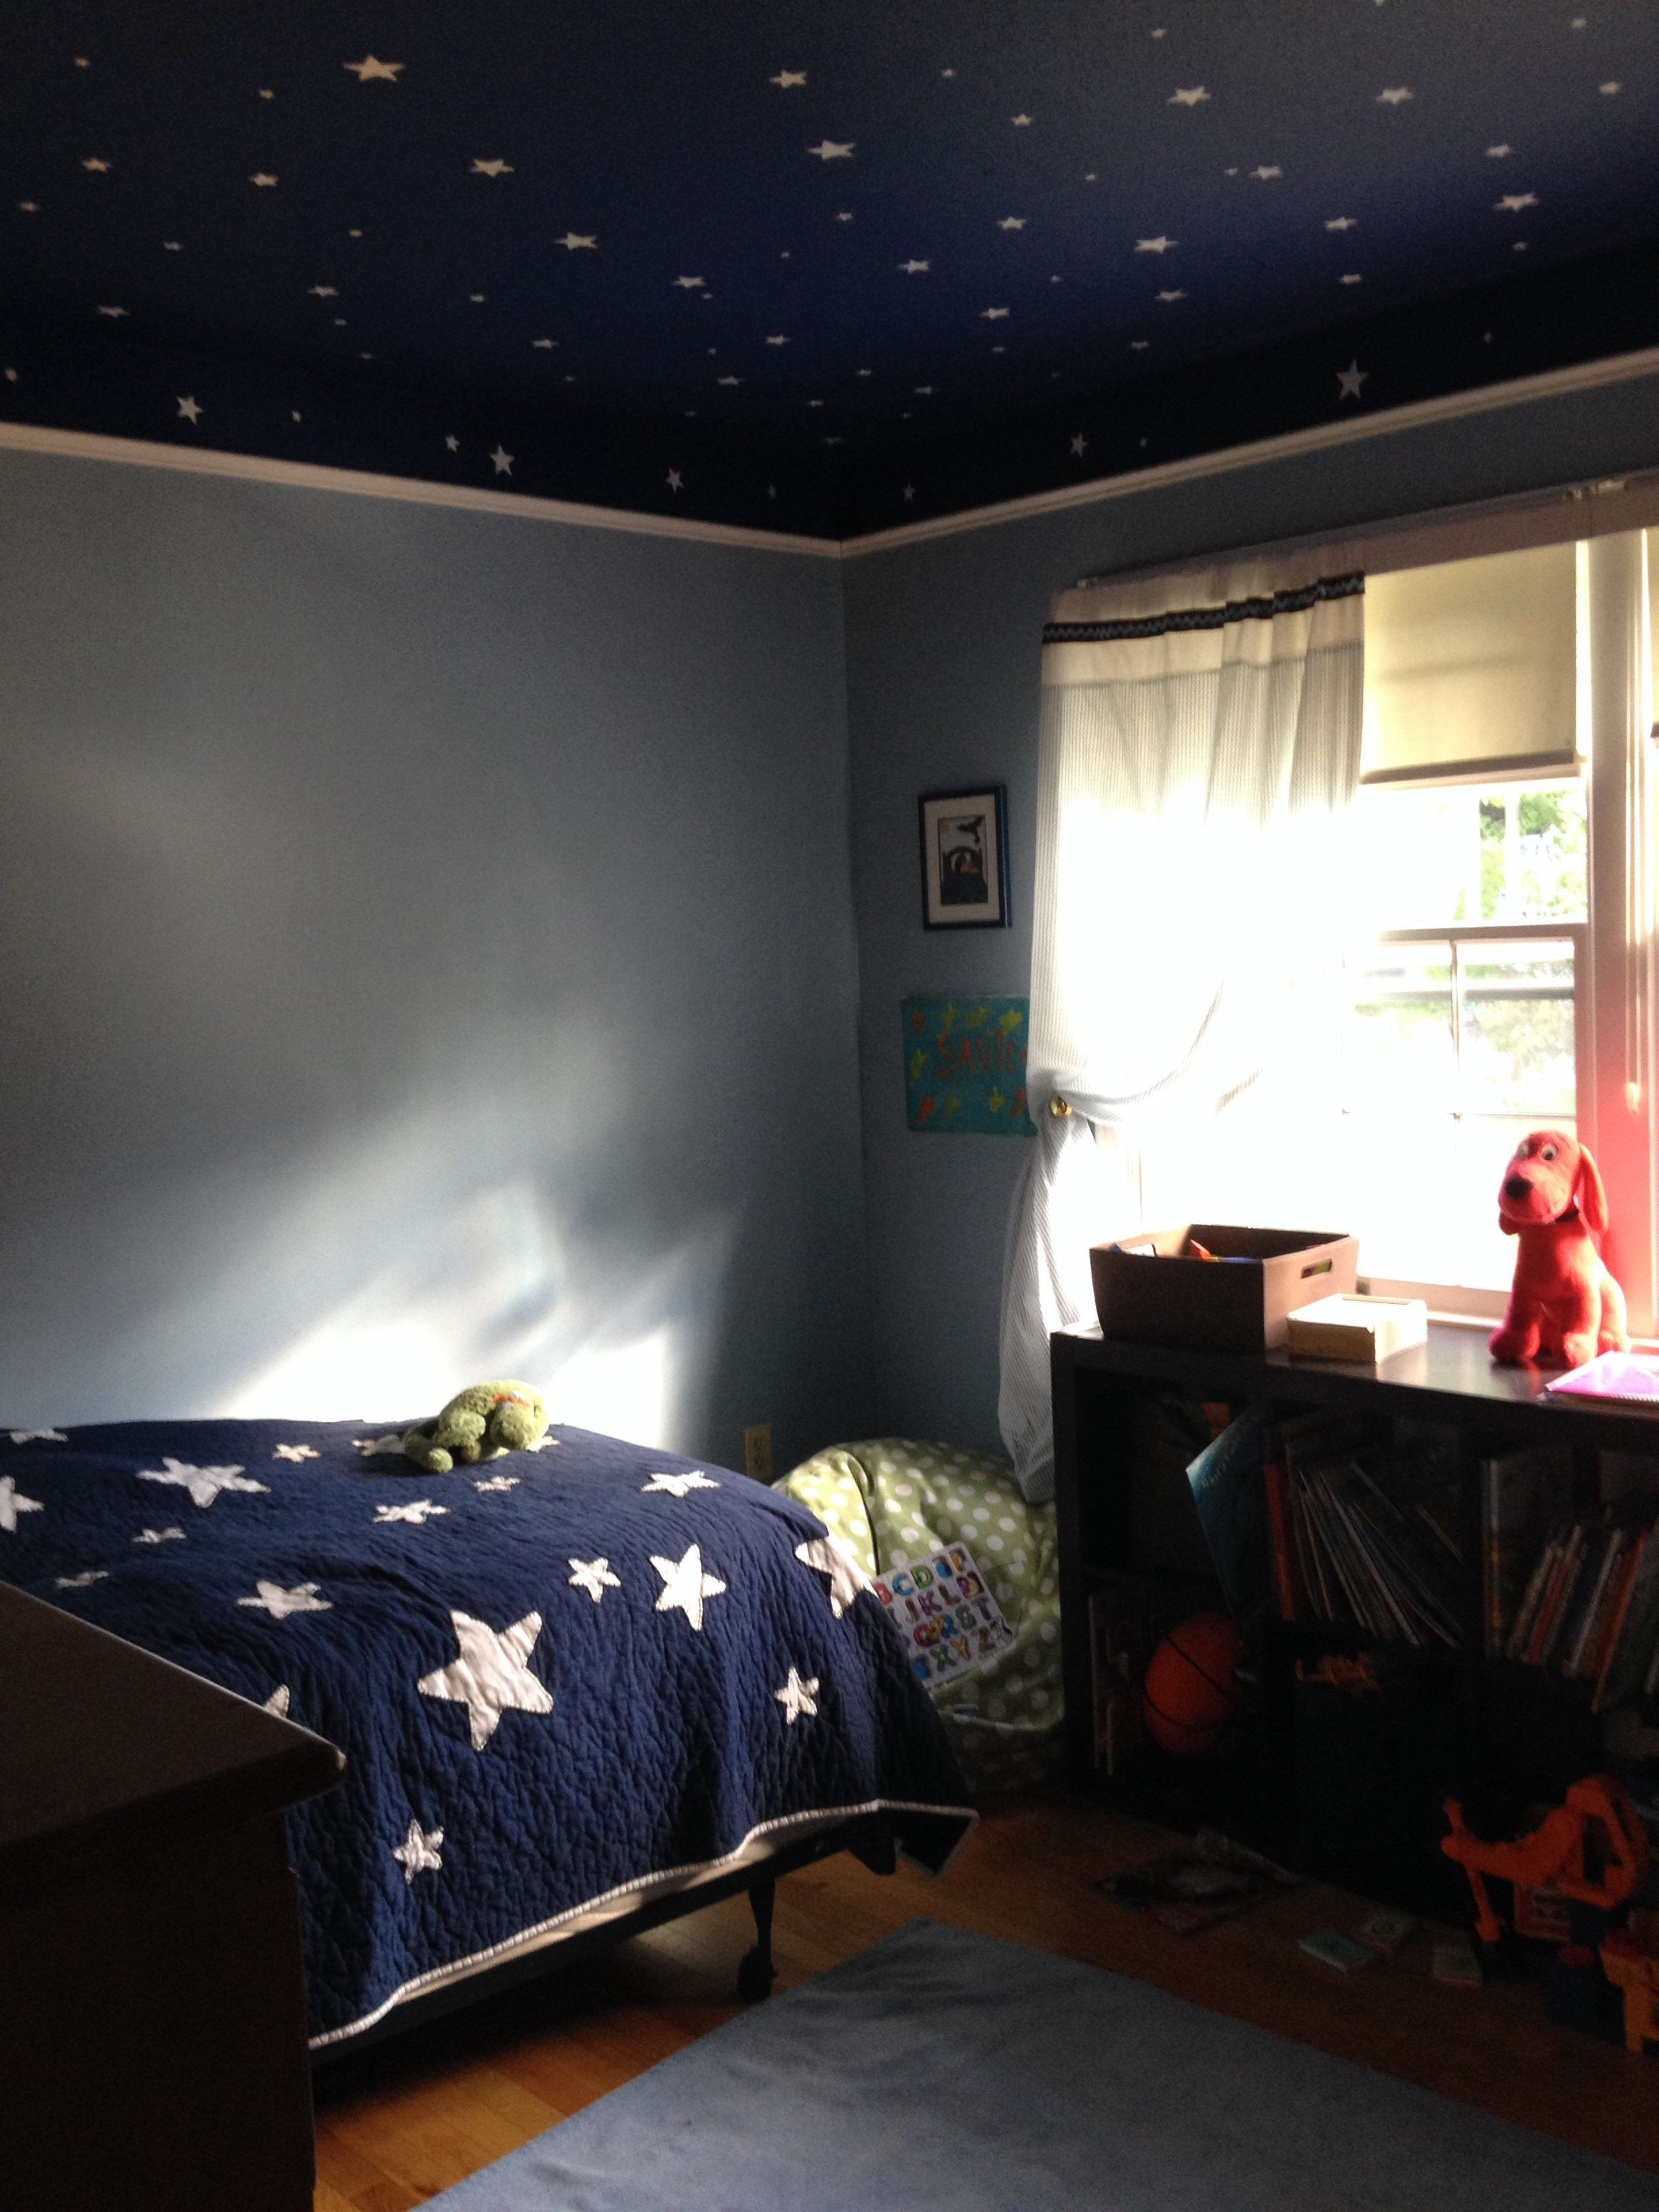 Space Room Decor for Kids New 4 Year Old Space Room I Love the Walls and Ceiling Space themed Room In 2019